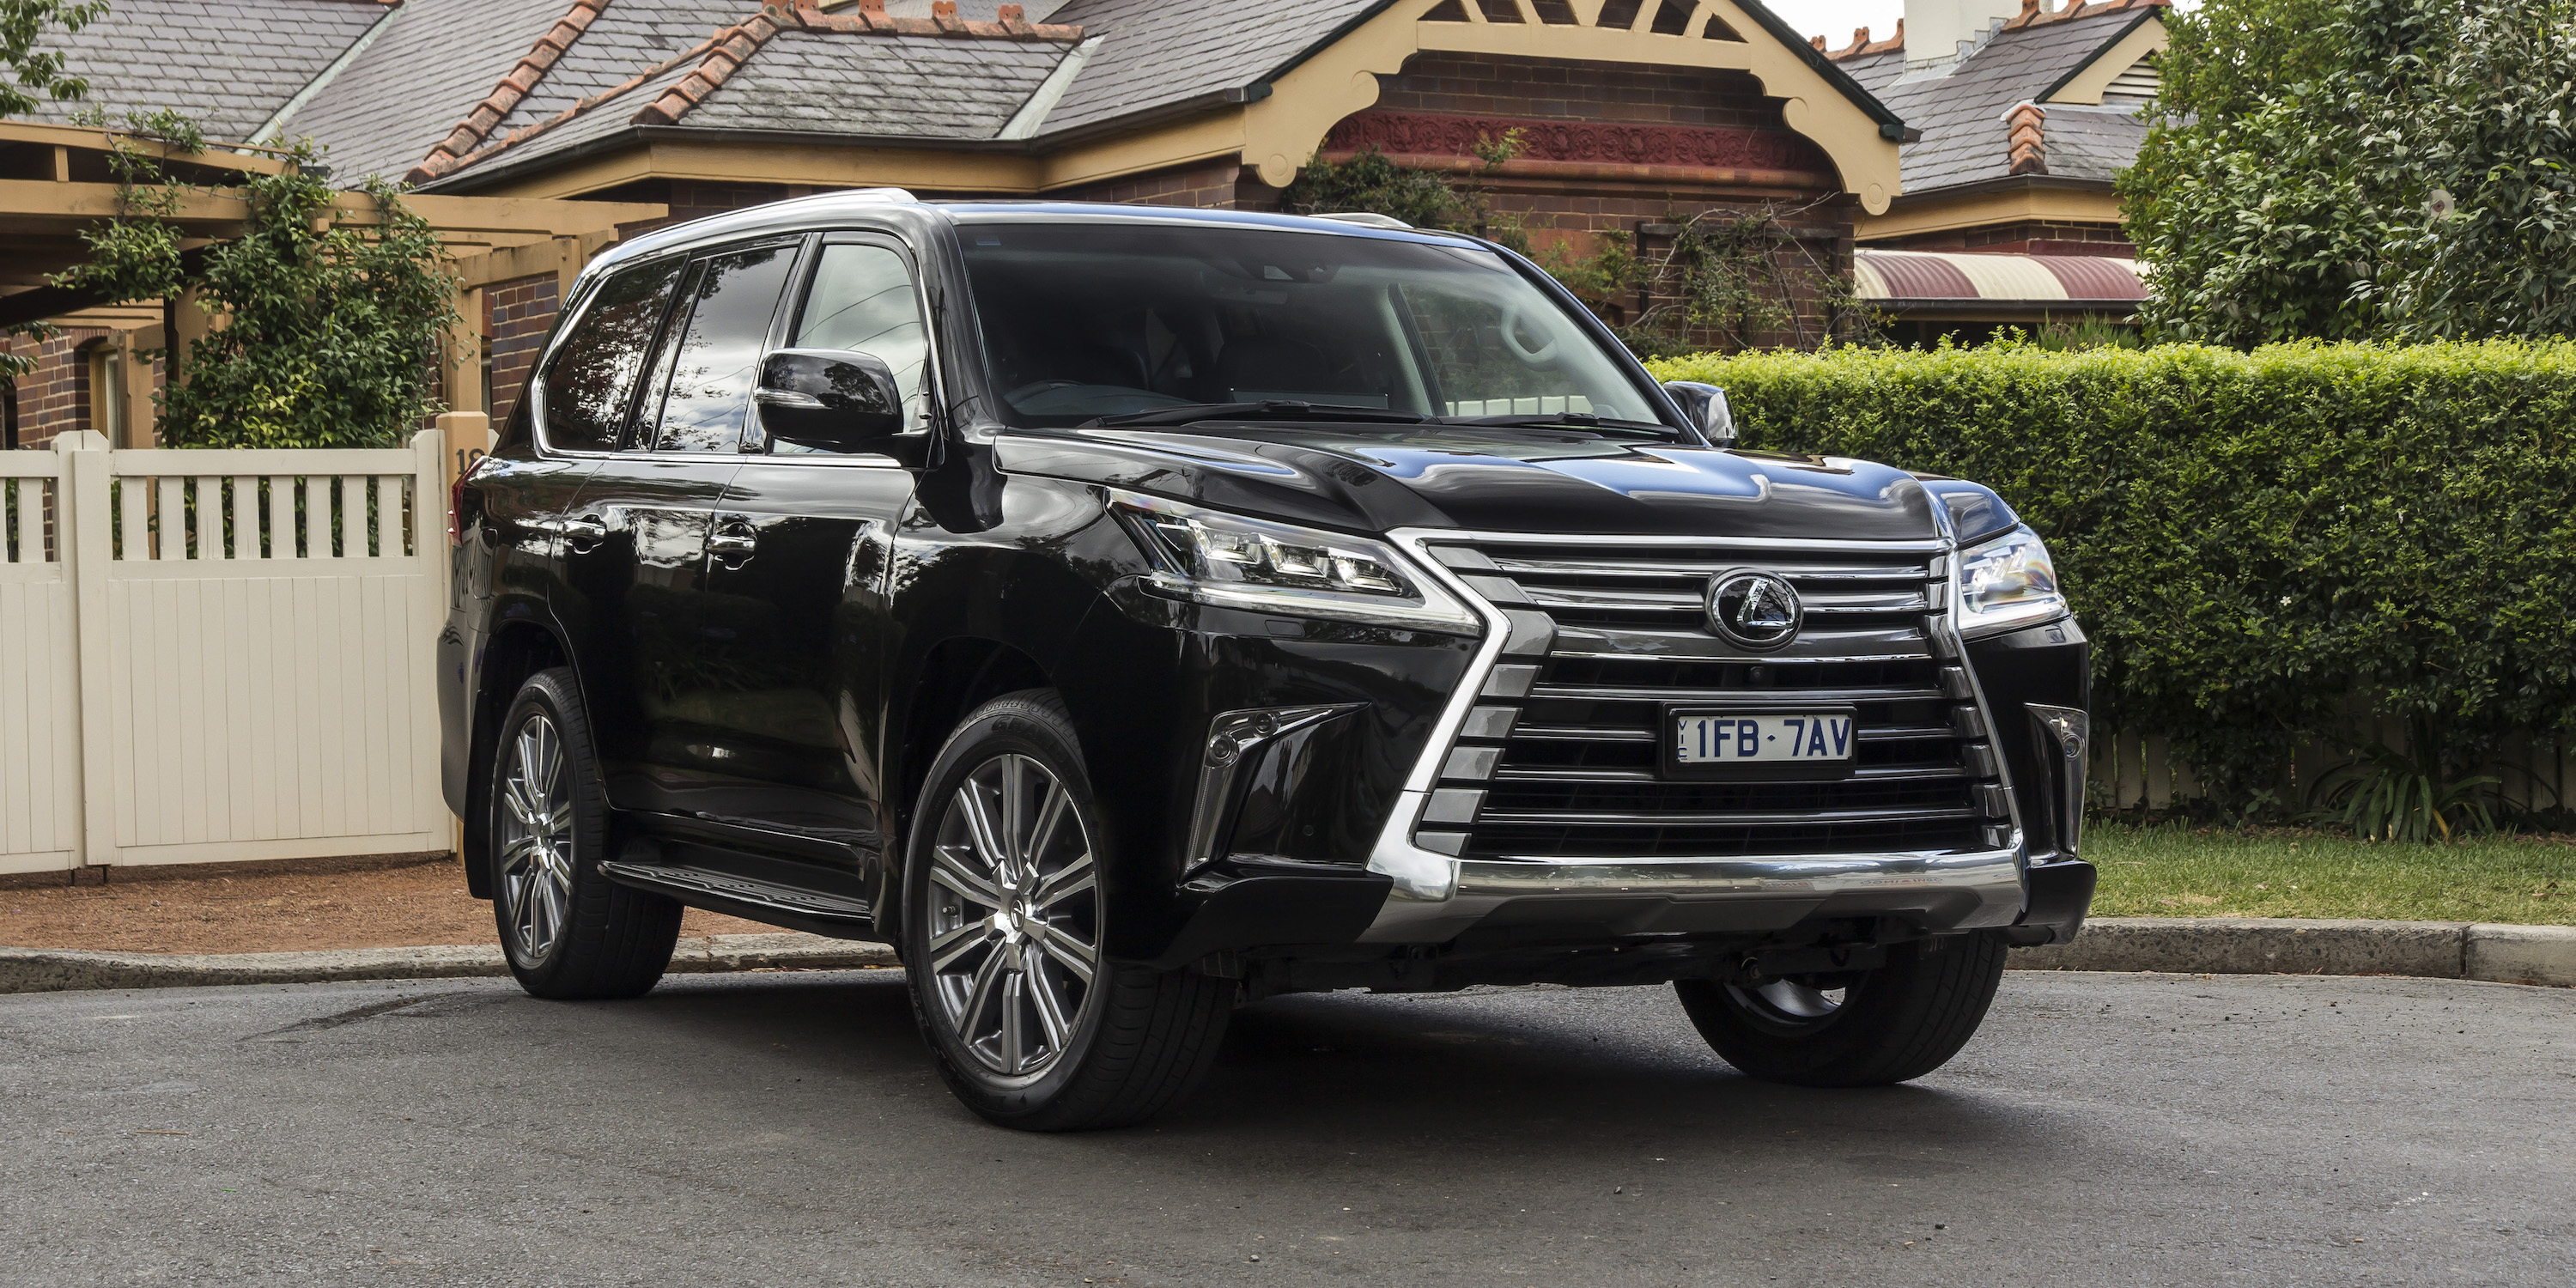 2016 lexus lx570 review caradvice. Black Bedroom Furniture Sets. Home Design Ideas